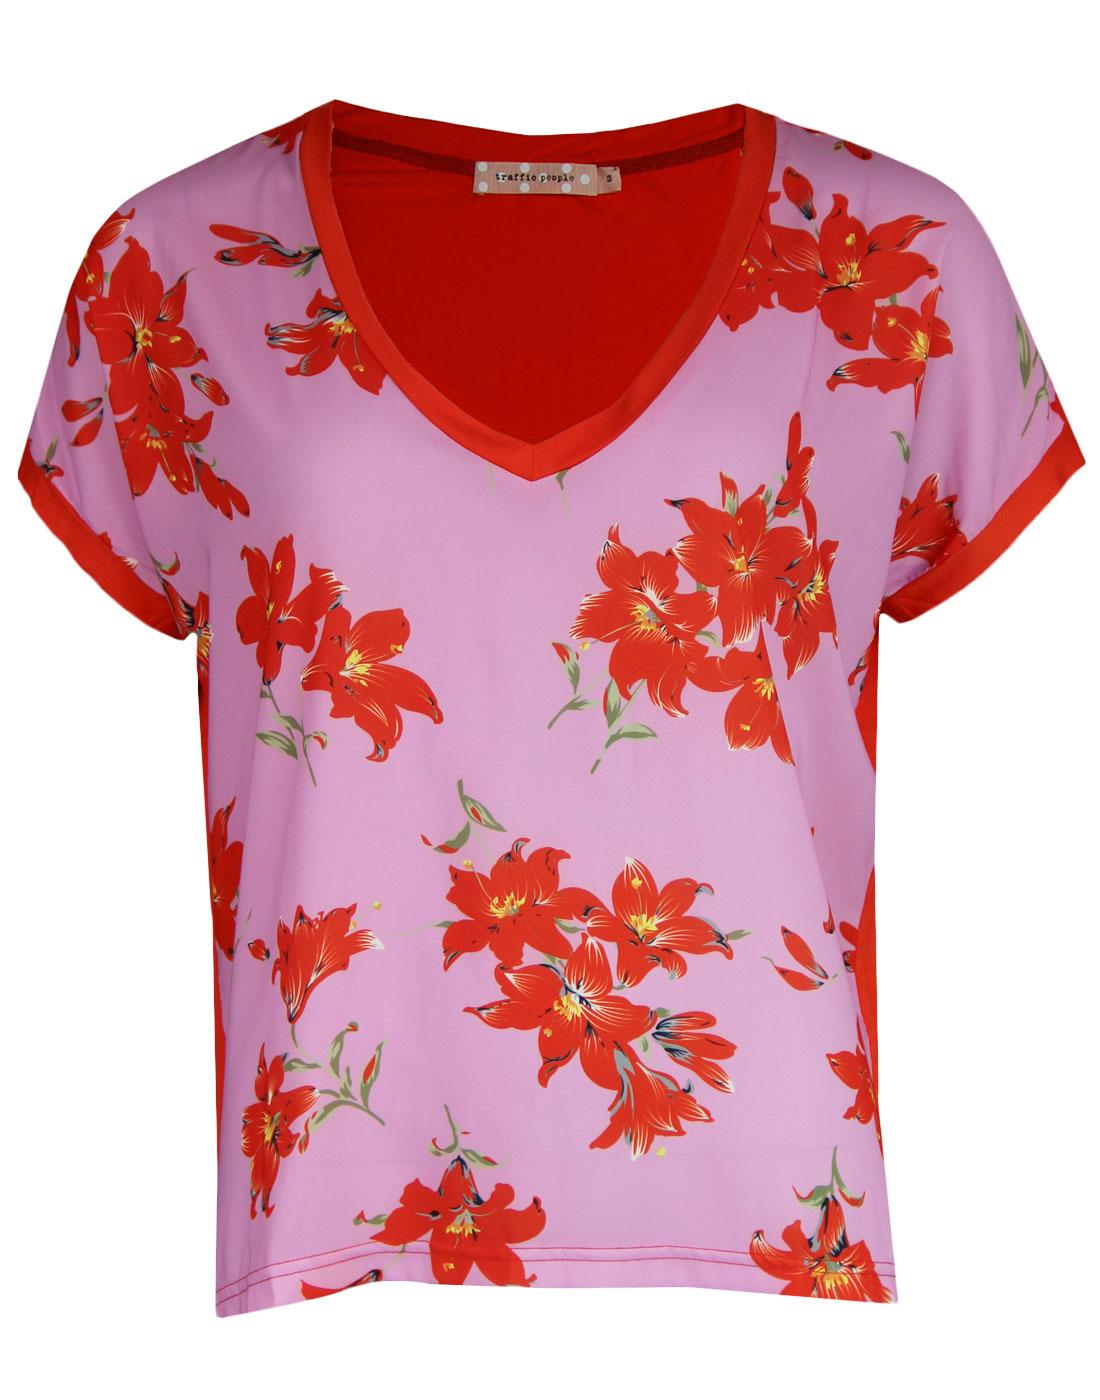 Two Faced TRAFFIC PEOPLE Retro Floral Tee Pink